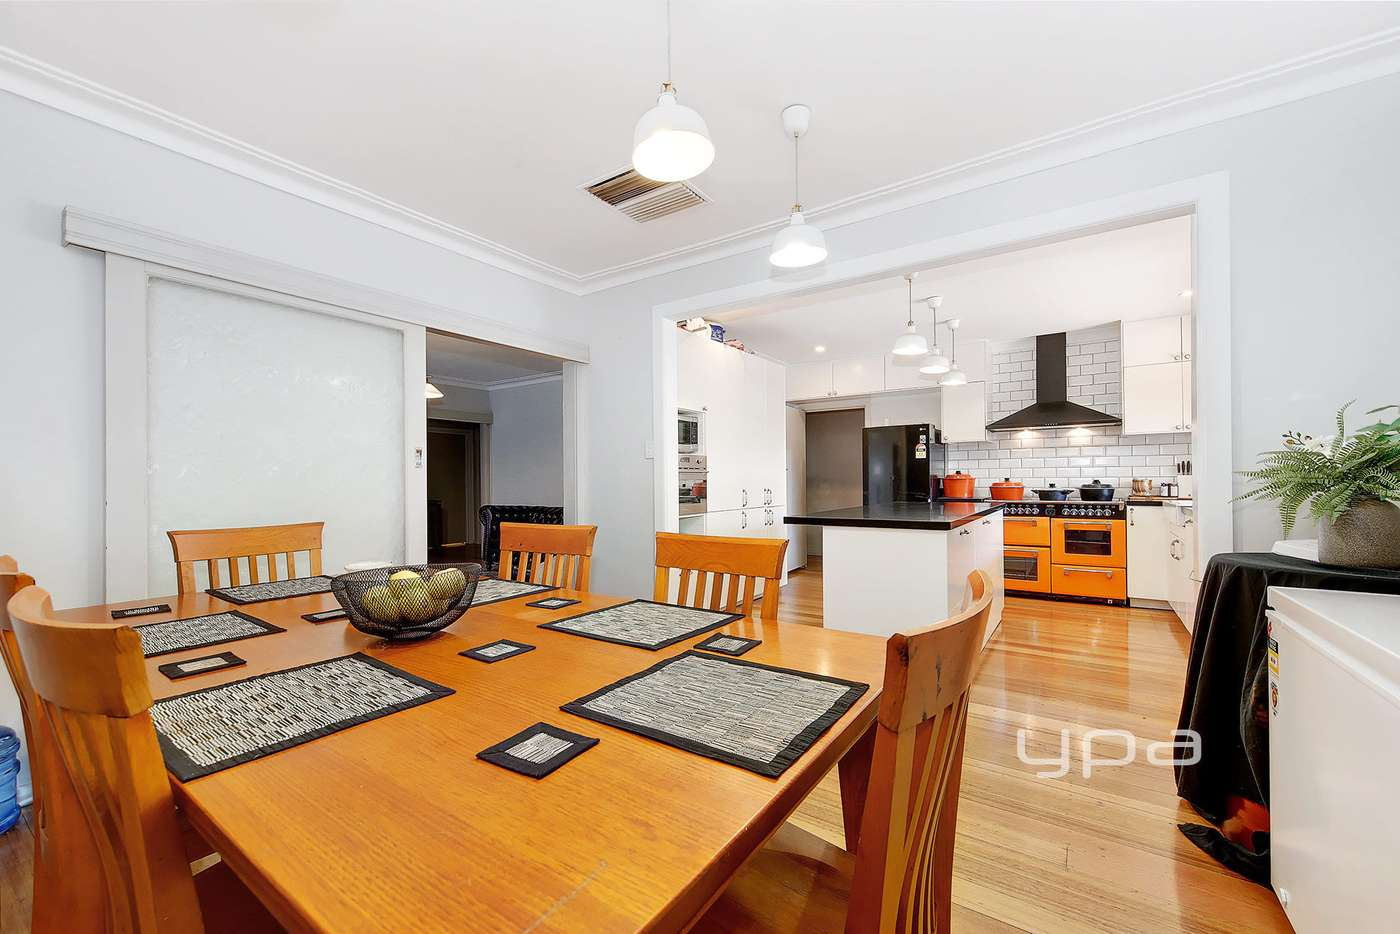 Fifth view of Homely house listing, 18 Cheviot Road, Campbellfield VIC 3061